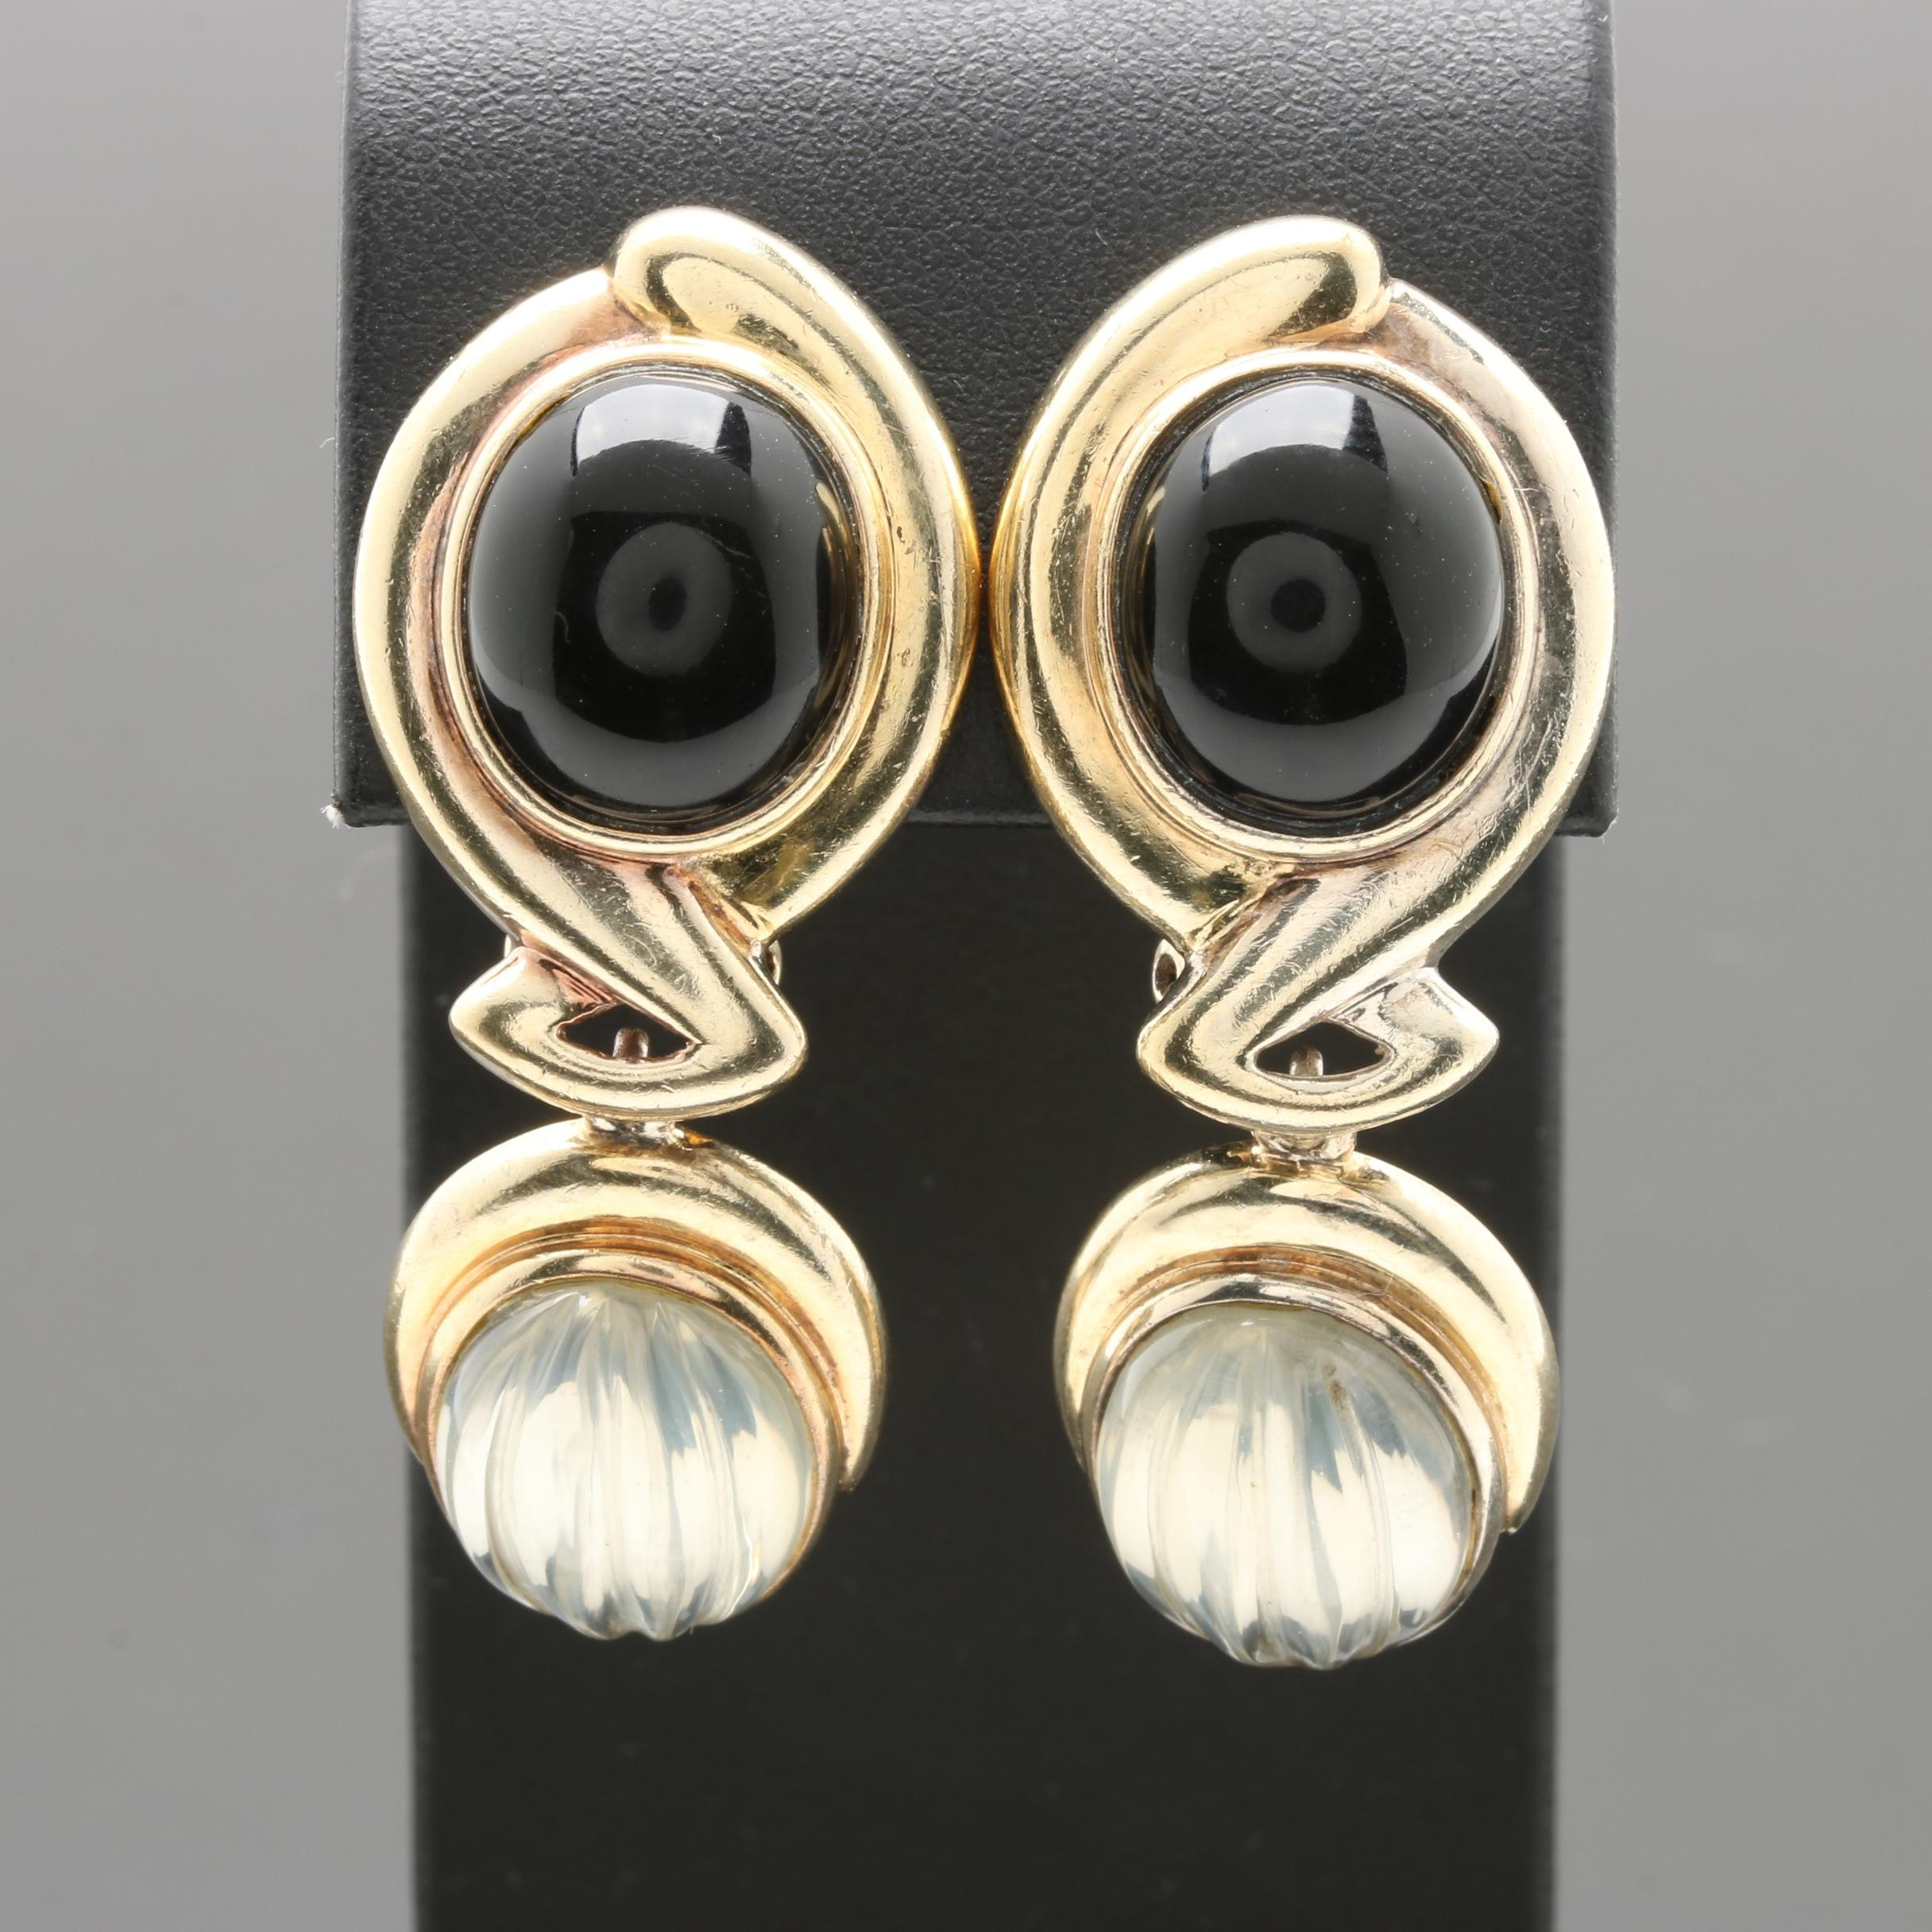 Kai-Yin Lo Gold Wash on Sterling Silver Black Onyx and Quartz Crystal Earrings